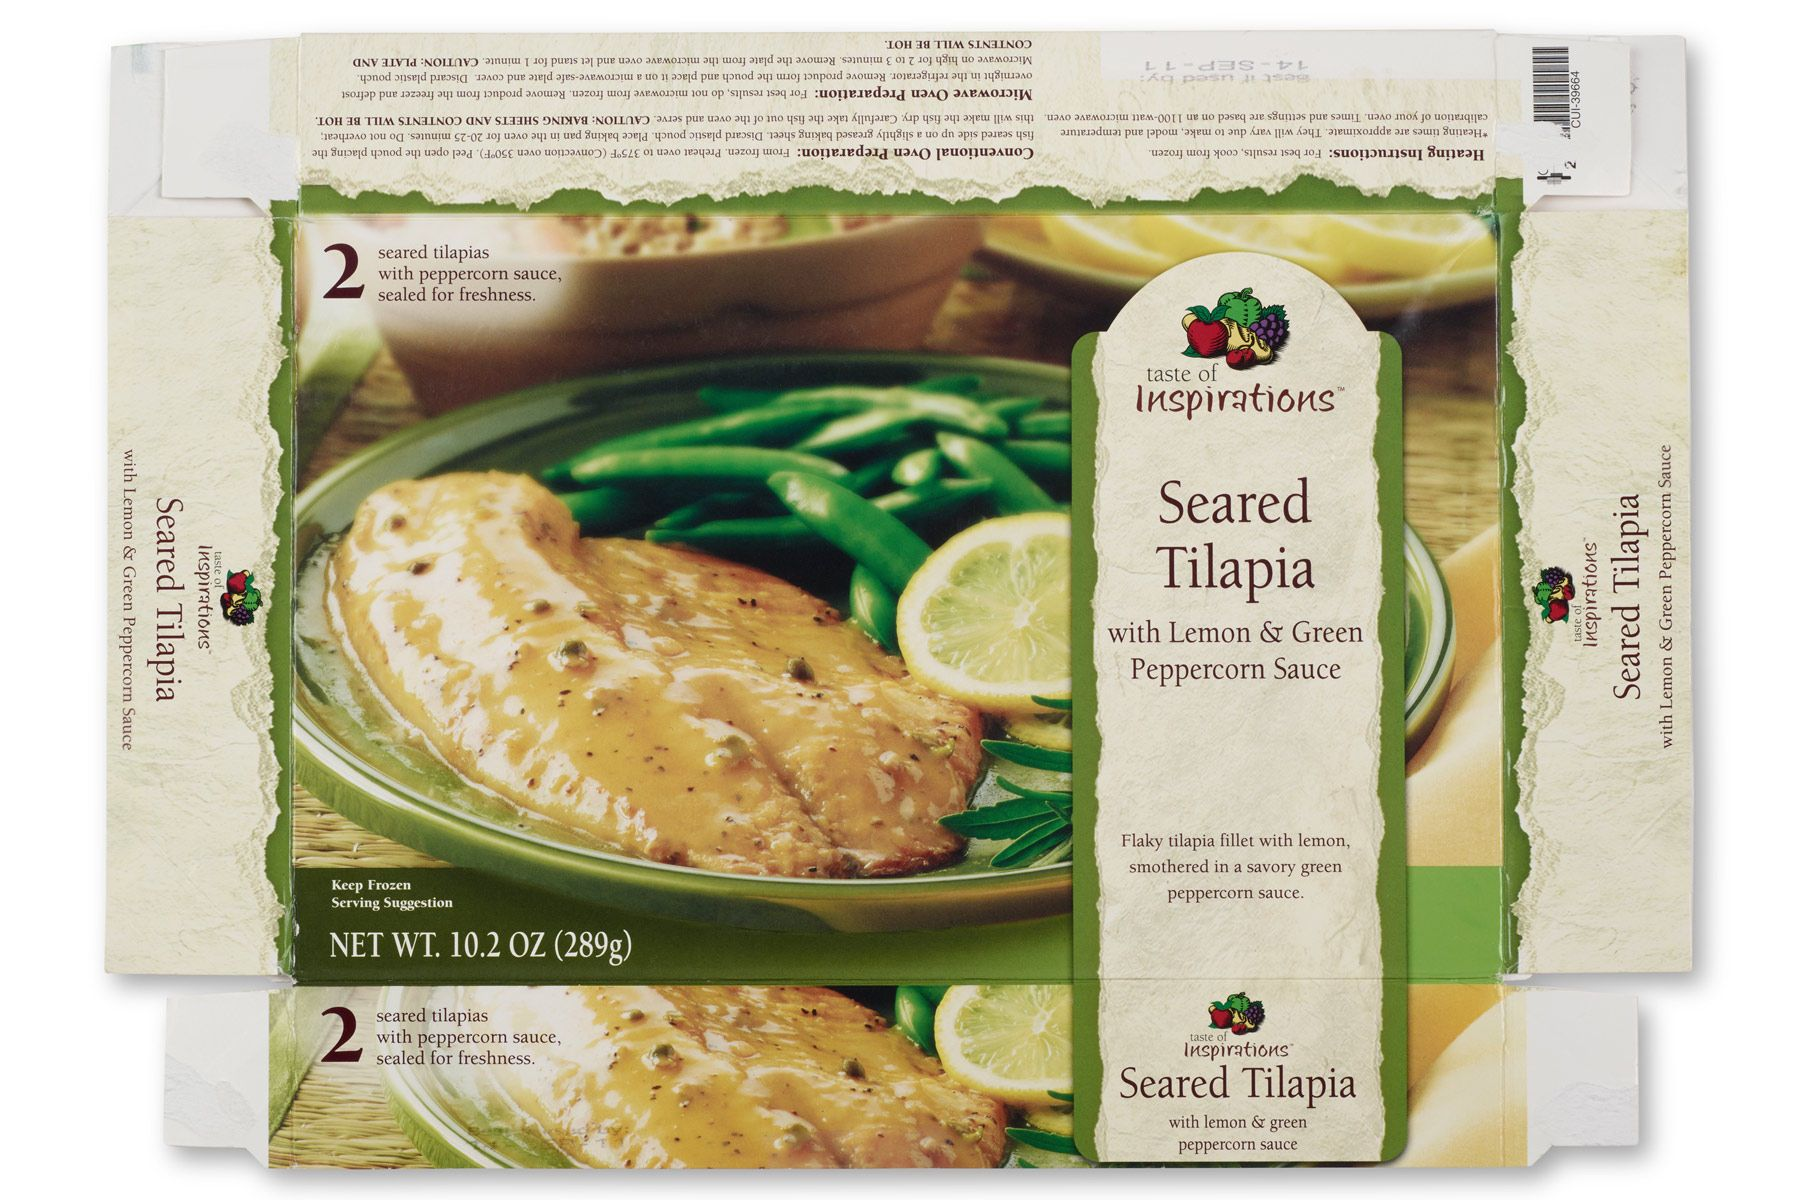 1toi_seared_tilapia.jpg